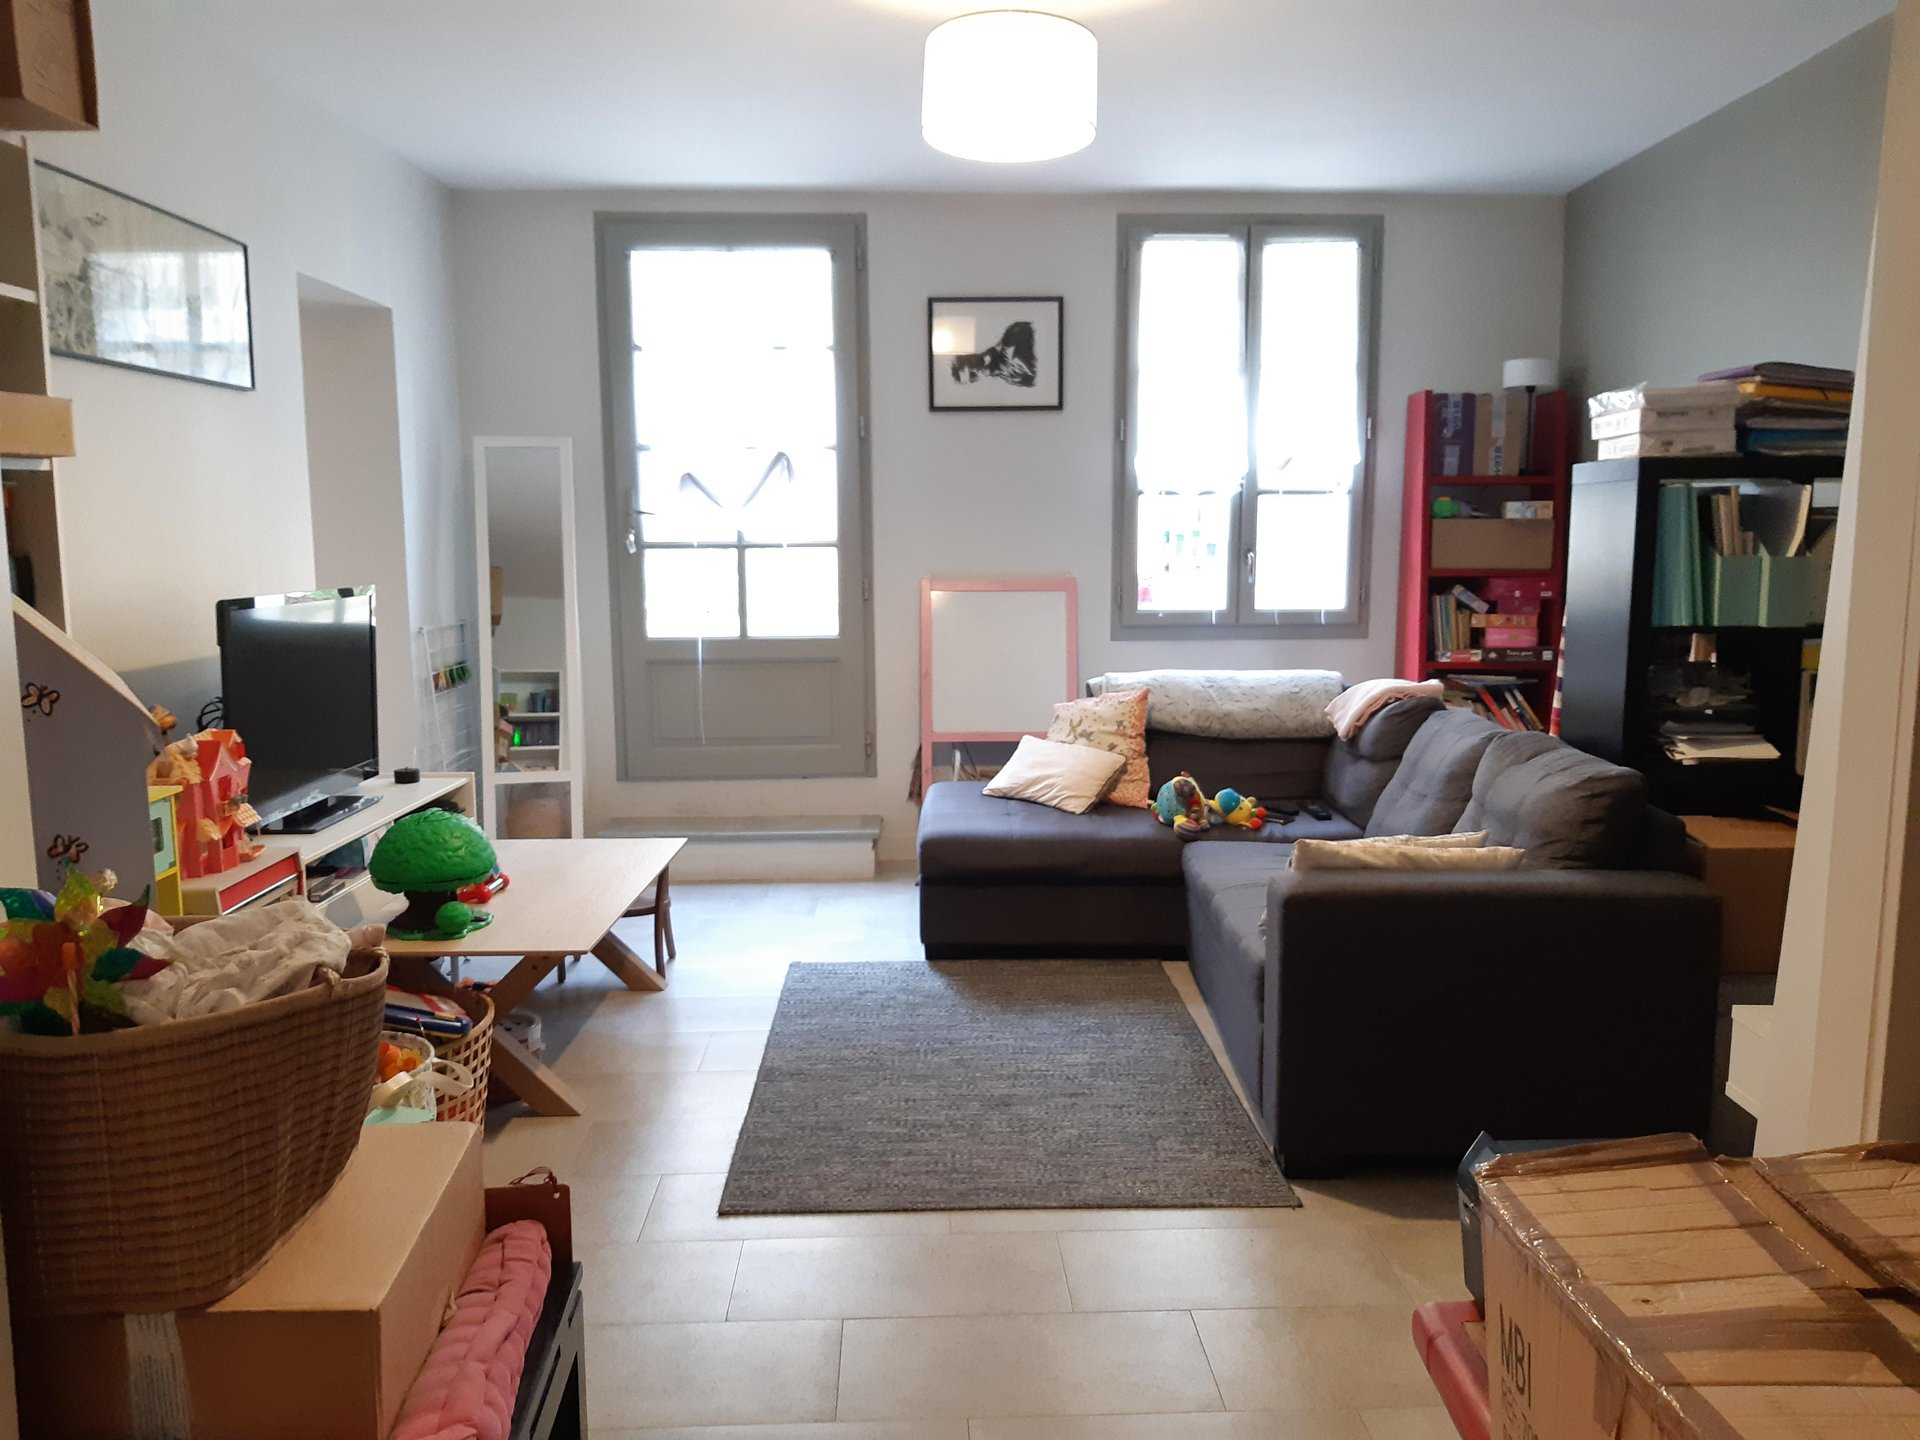 Location Appartement AVIGNON Mandat : 646